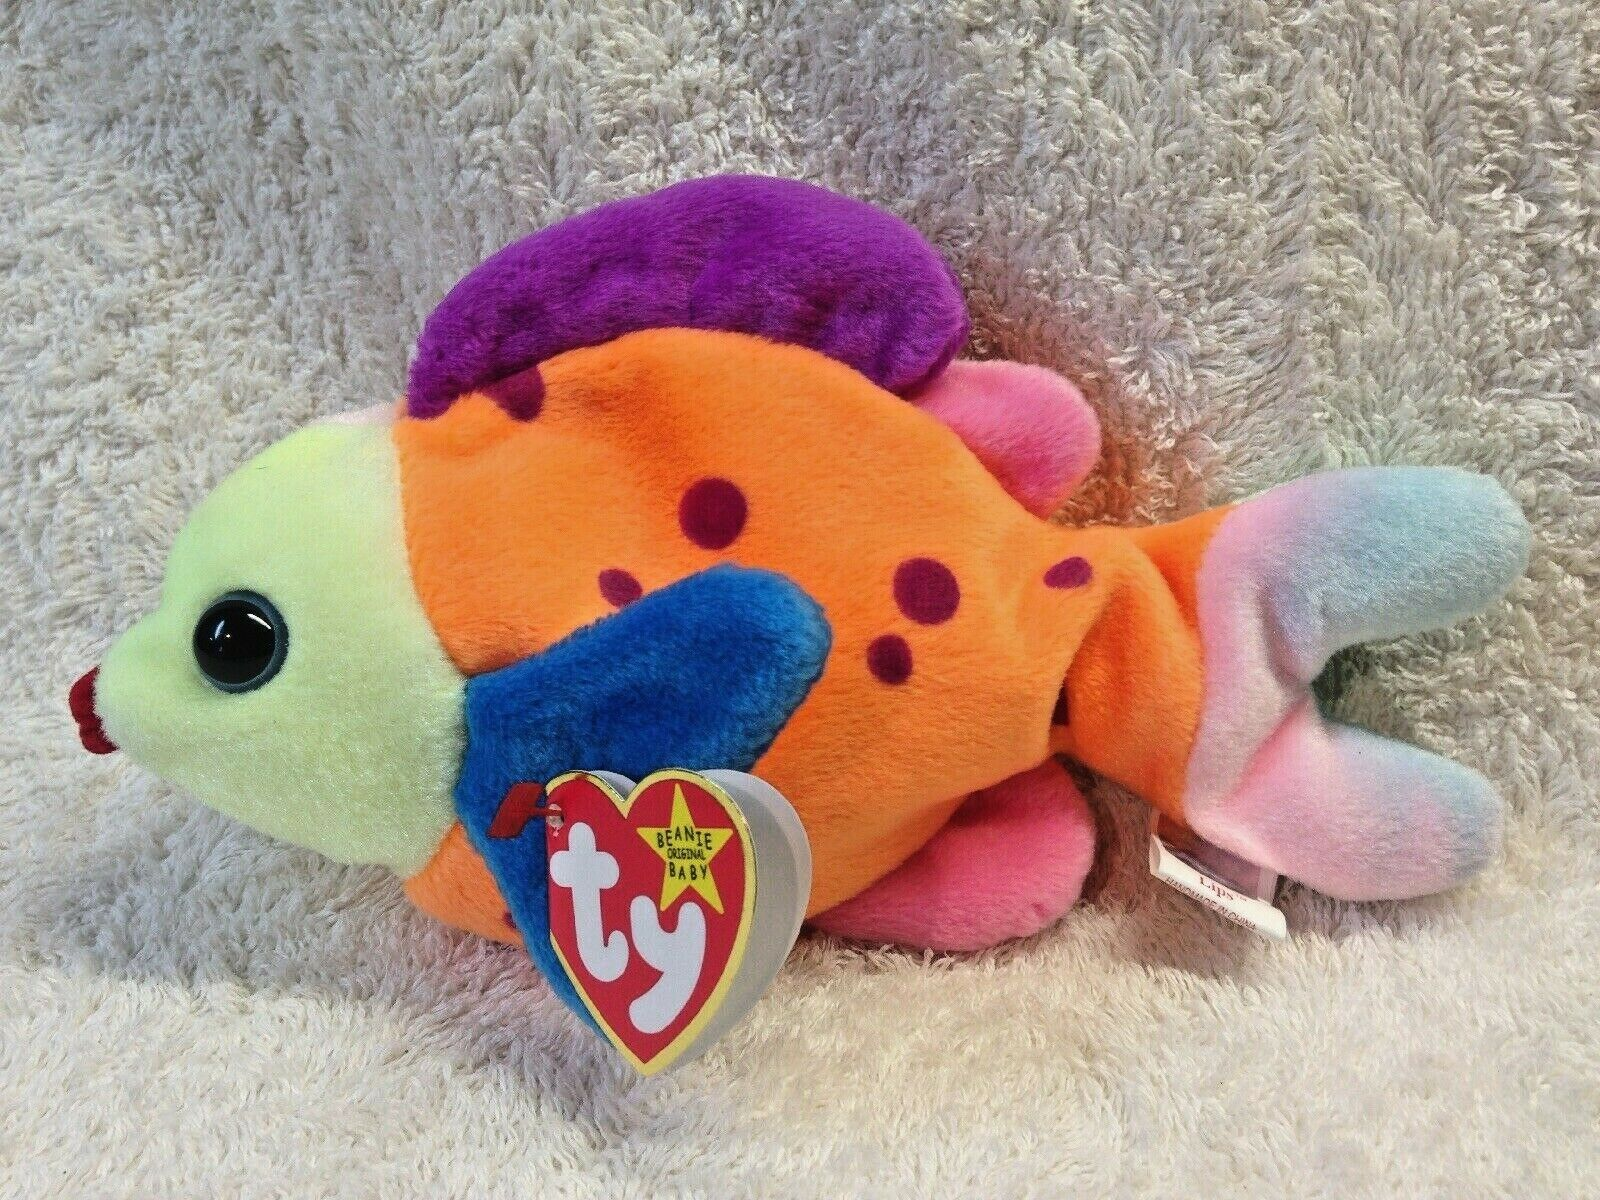 Lips TY Beanie Baby With Tag Errors